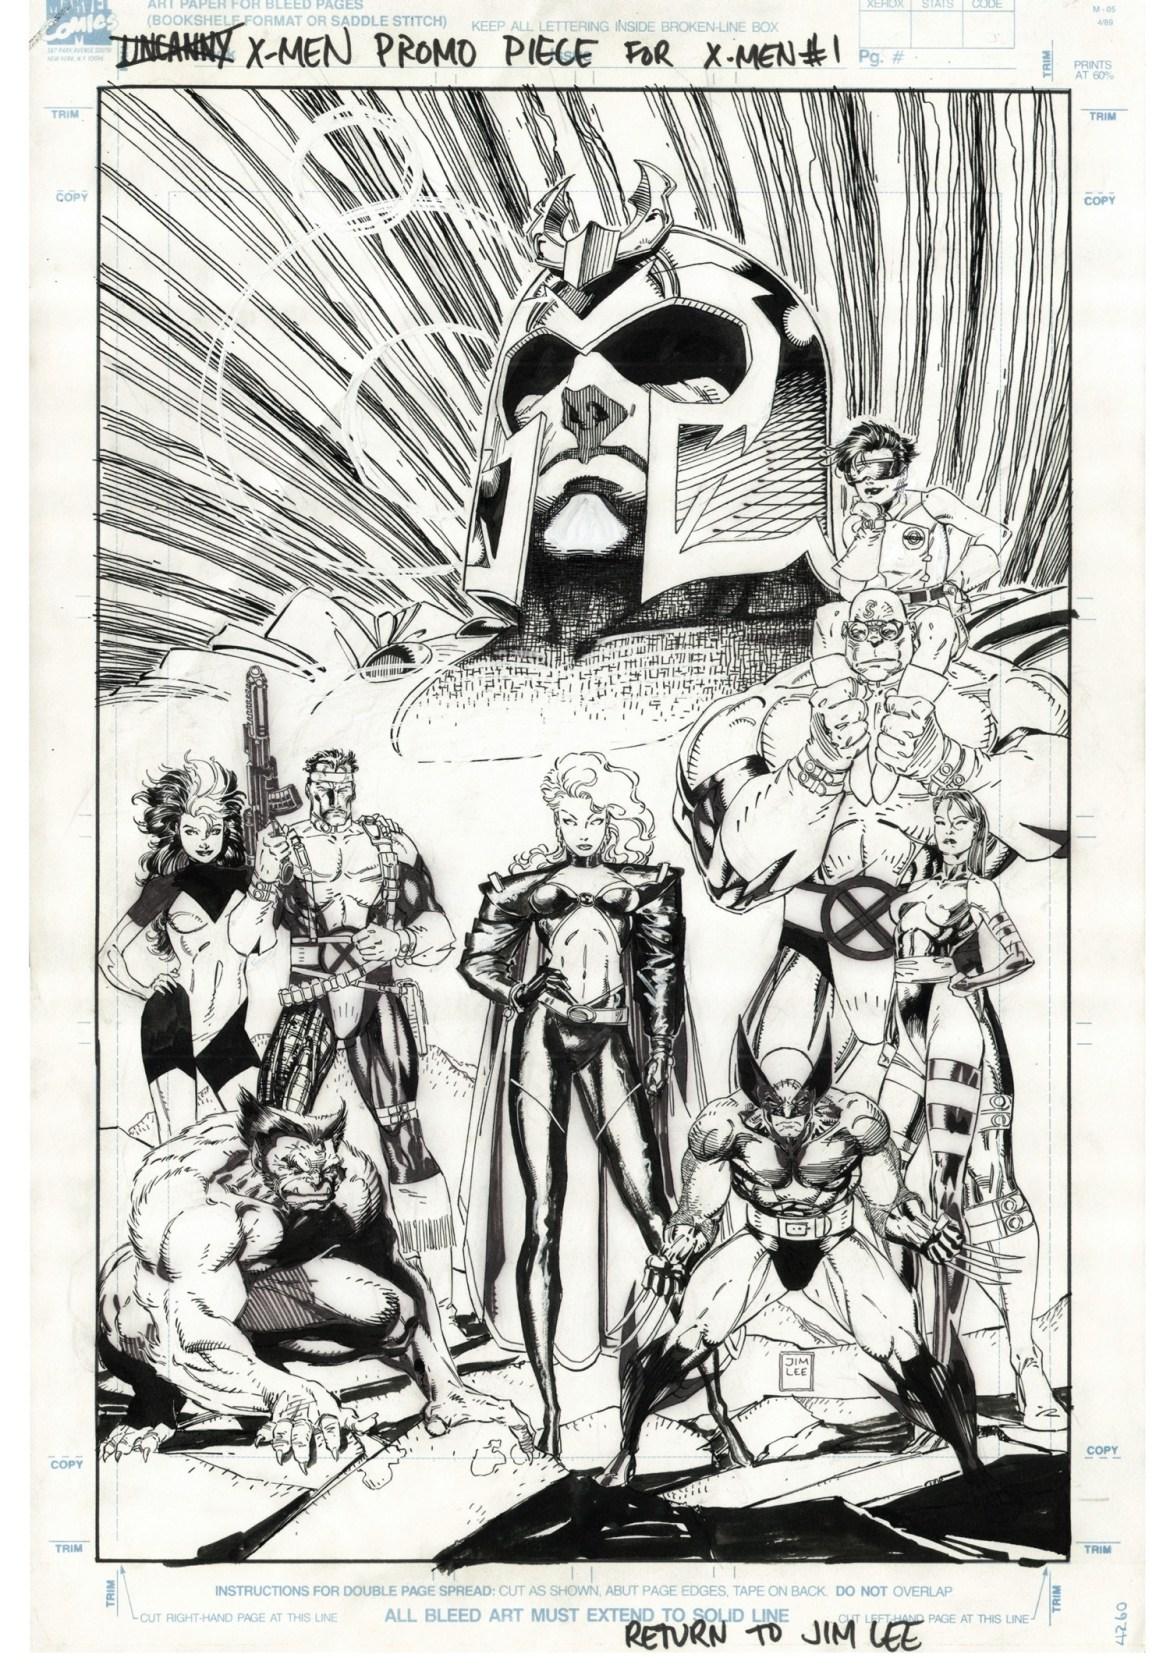 bd3dce10-cc2a-49cf-8f5d-00c8a79c7149 JIM LEE'S X-MEN ARTIST'S EDITION to contain the best selling X-Men #1